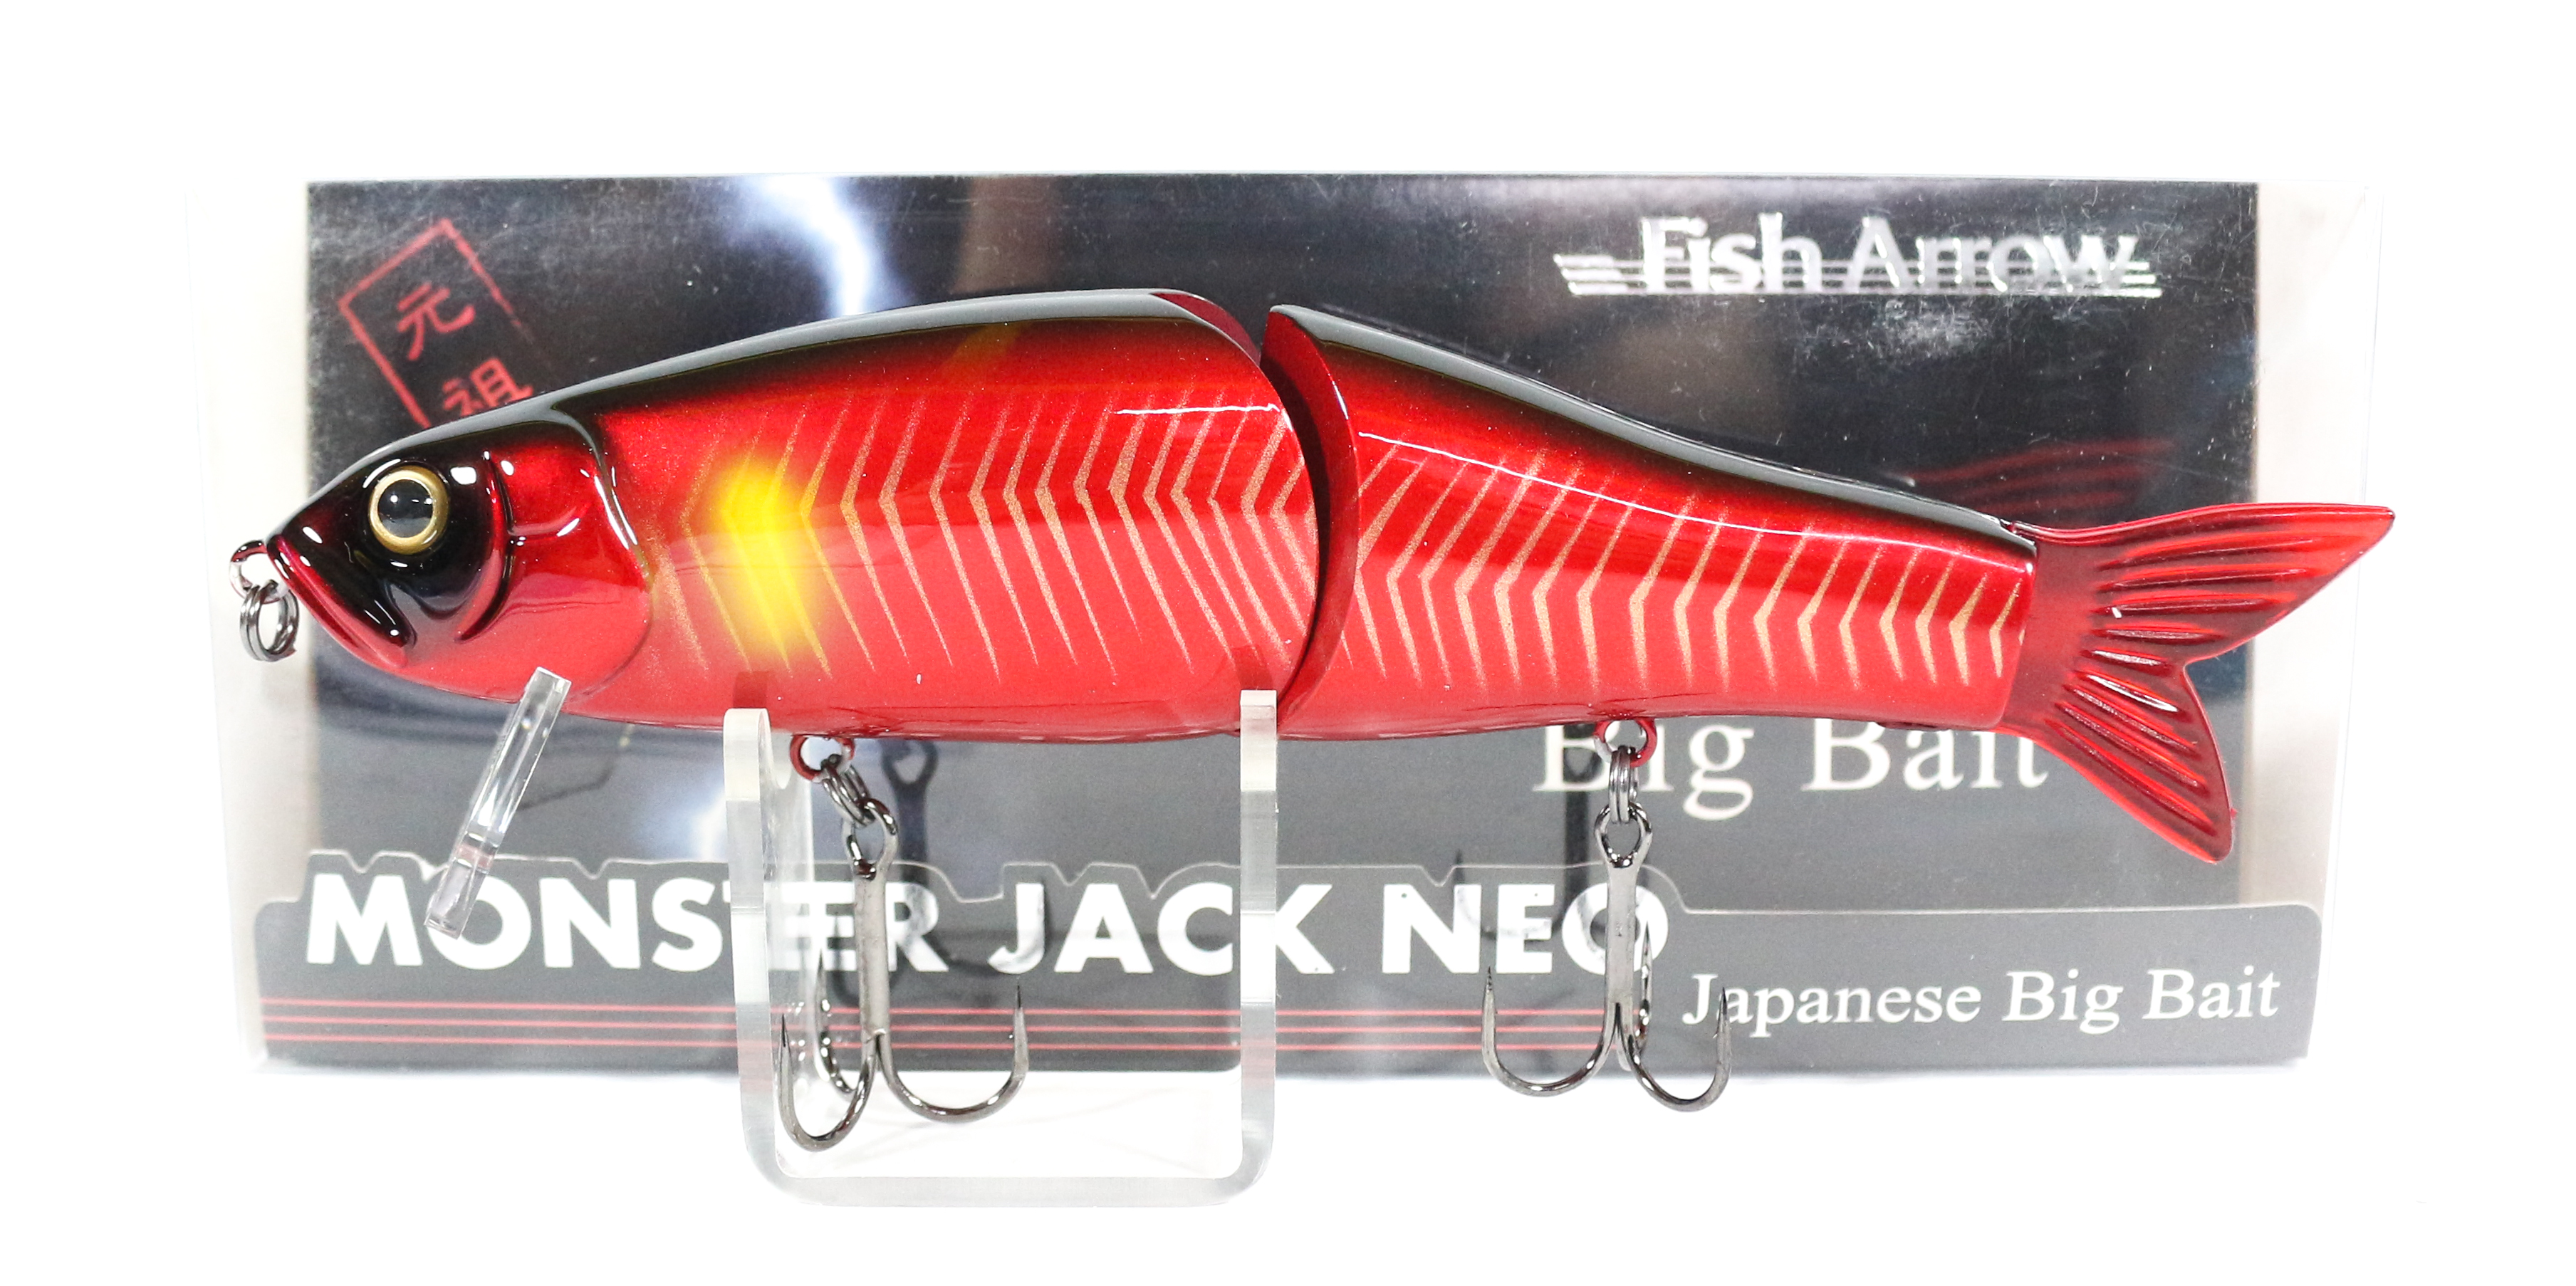 Fish Arrow Monster Jack Neo Big Bait Floating Lure 0360 (9327)